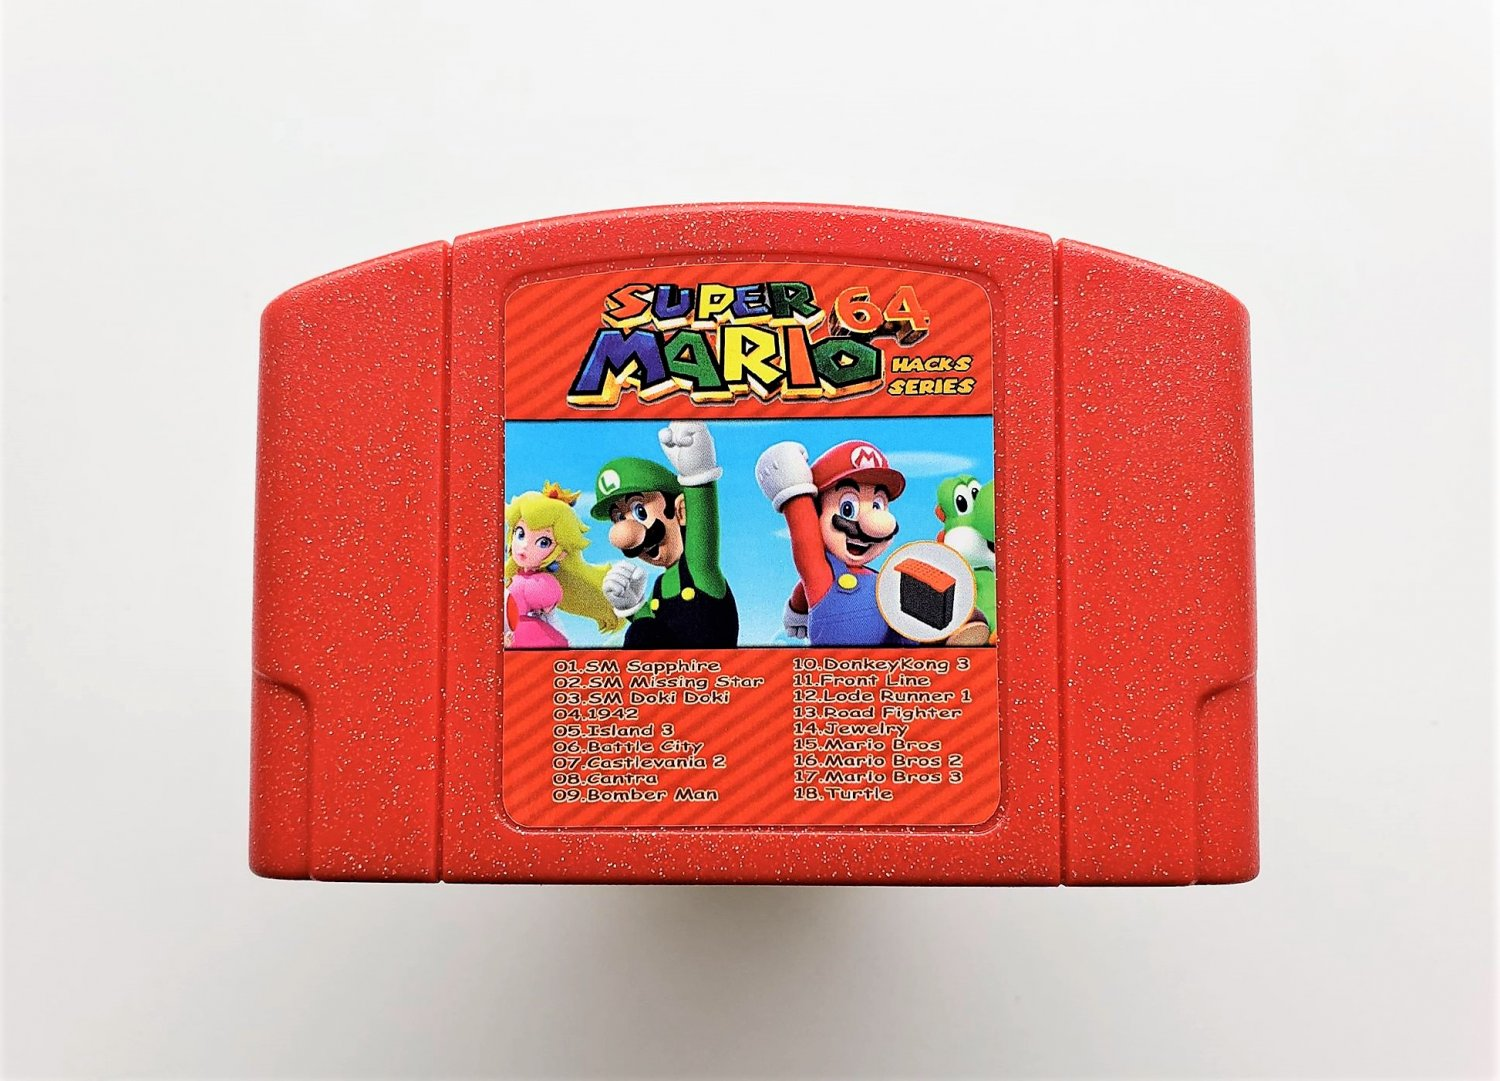 Super Mario 64 Hack - 18 in 1 Games N64 Multi-cart - Needs Expansion Pak To Play